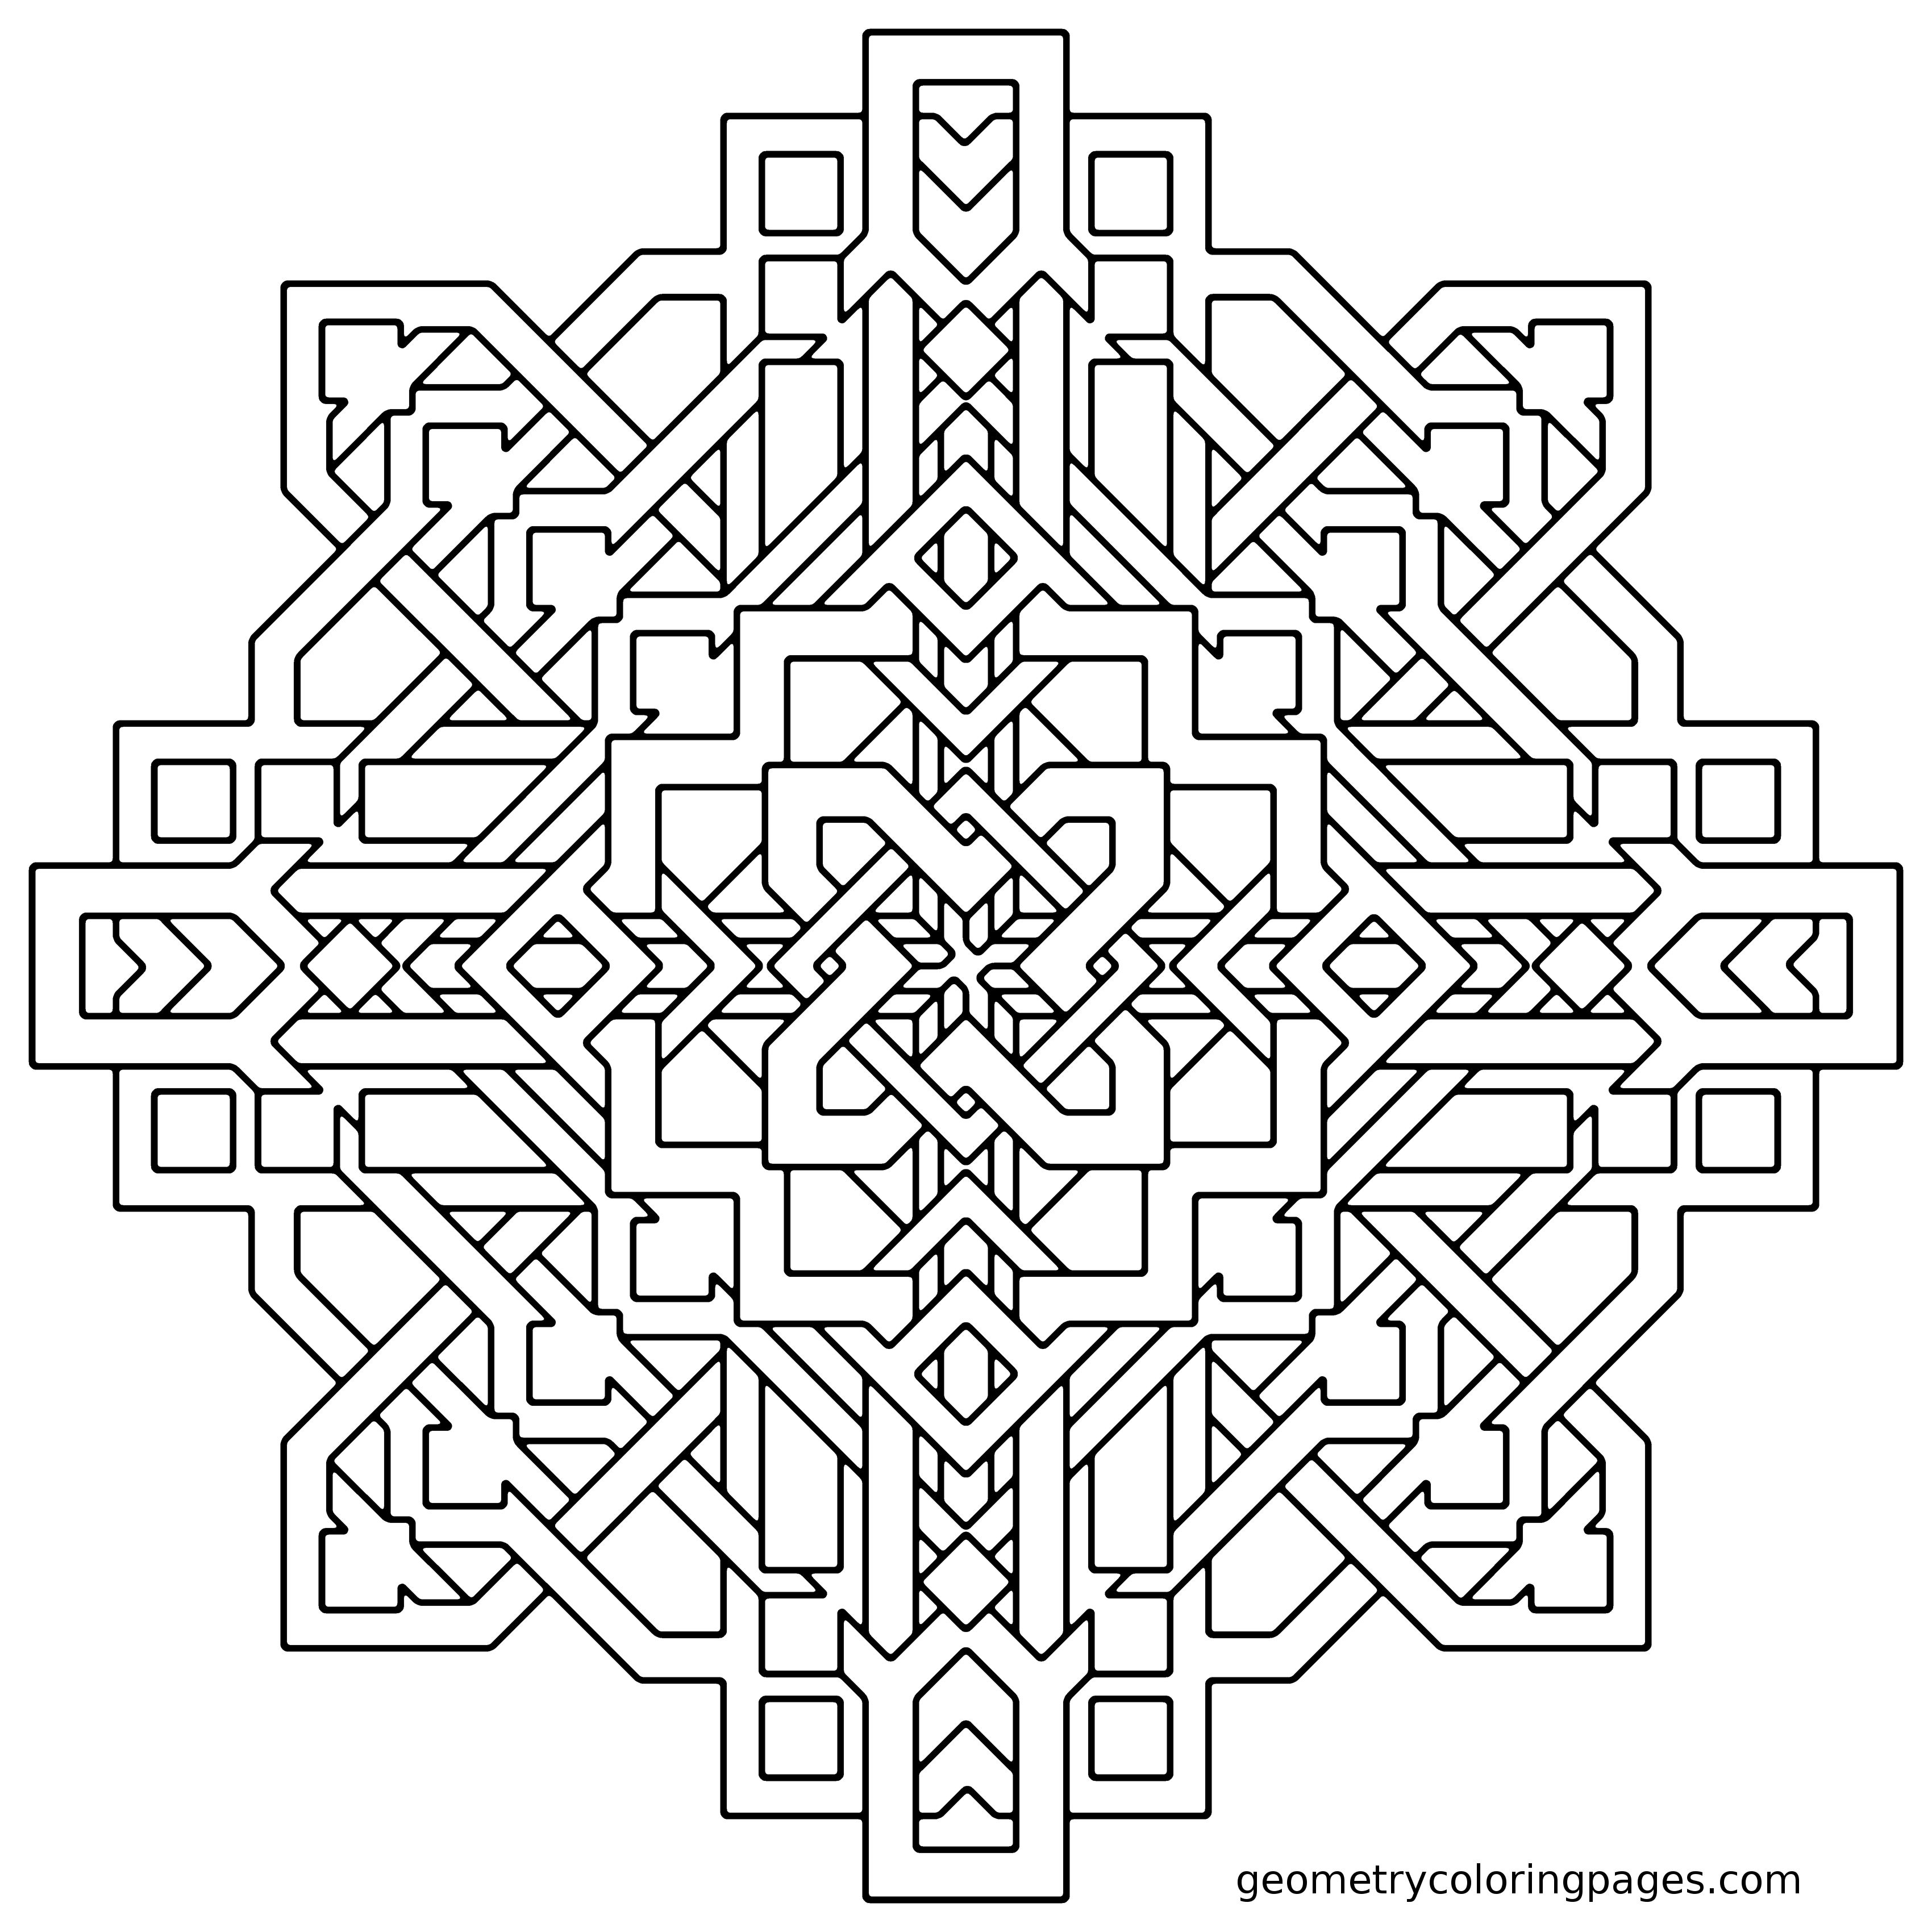 Mandala Coloring Page, Frank W from geometrycoloringpages.com